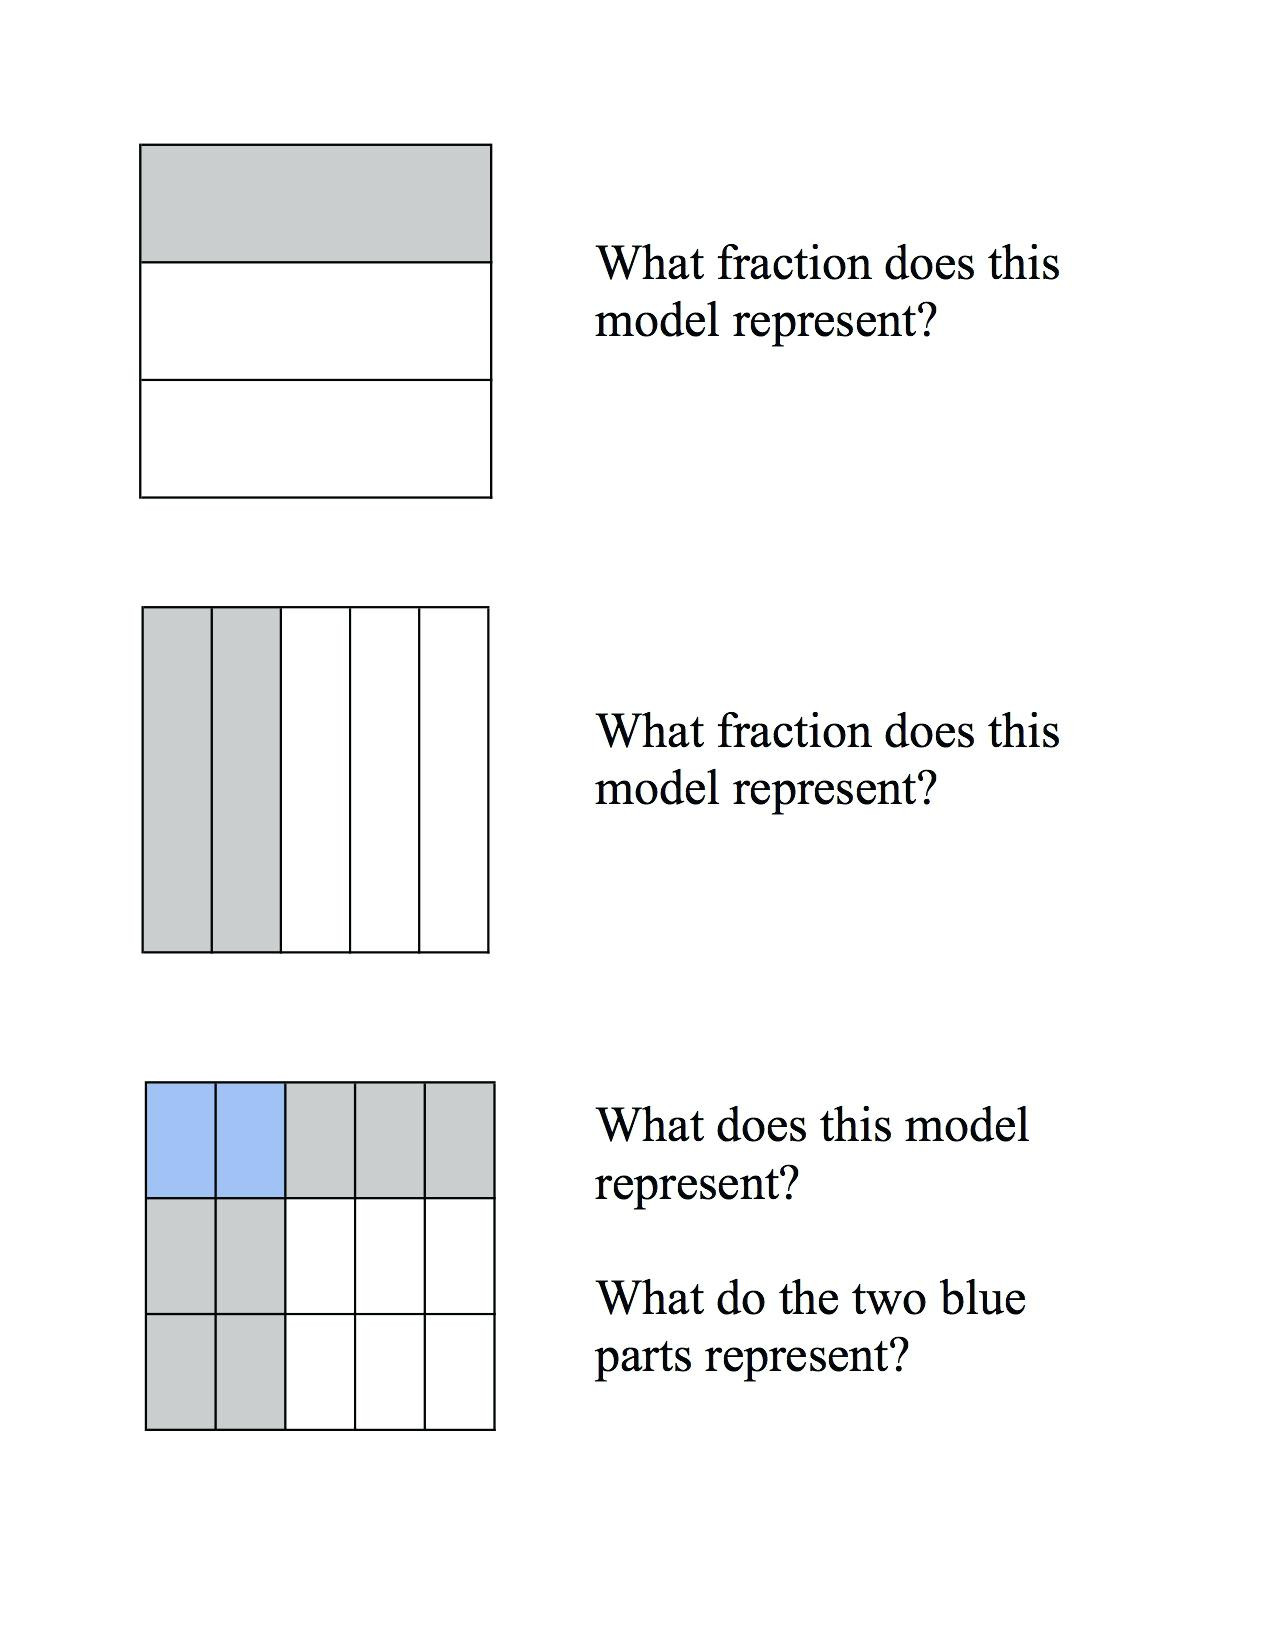 Multiplying Fractions Worksheet 6th Grade Fraction Multiplication Worksheet Using Visual Fraction